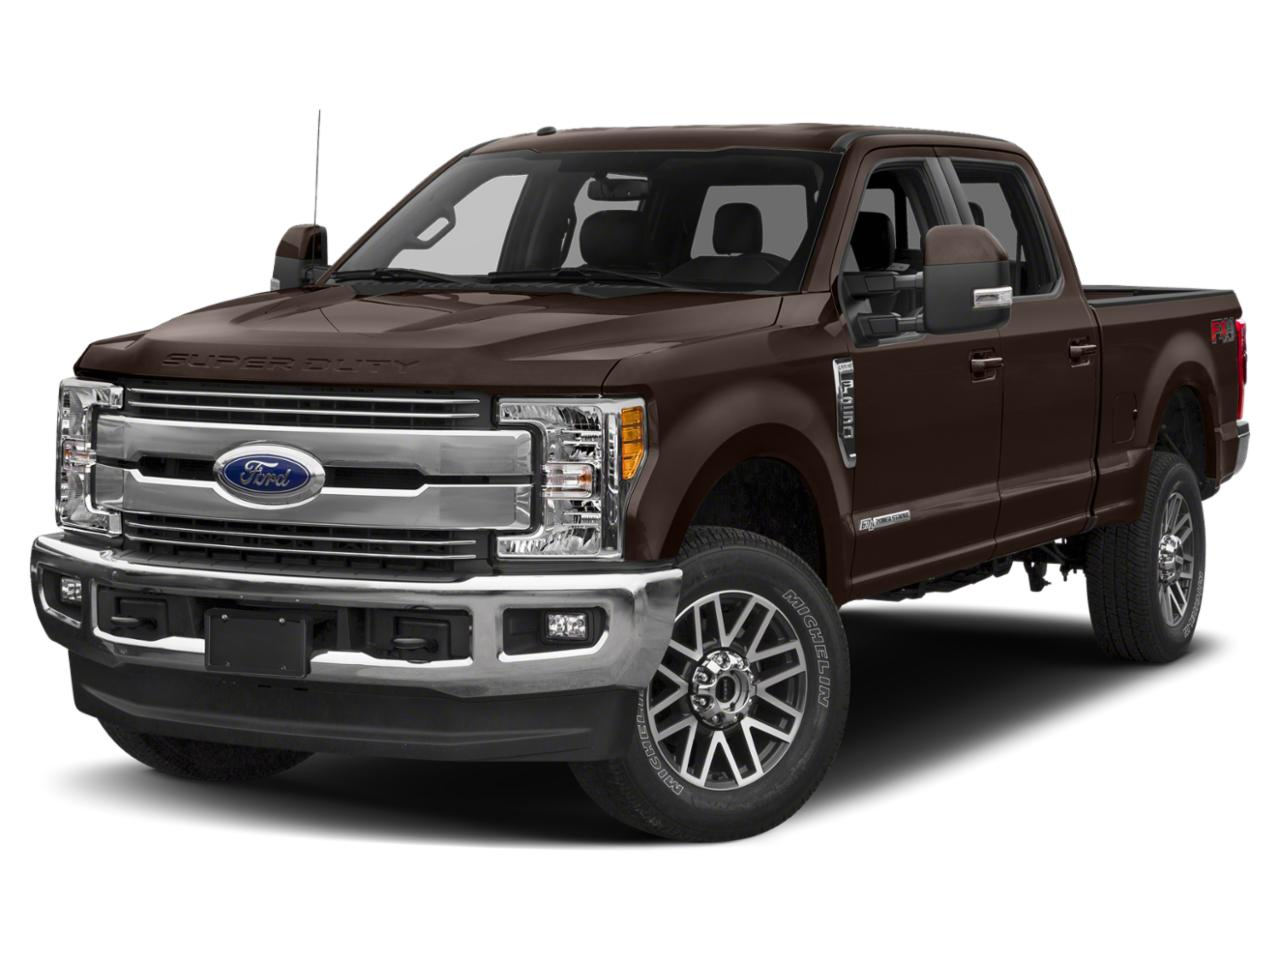 2019 Ford Super Duty F-250 SRW Vehicle Photo in Smyrna, GA 30080